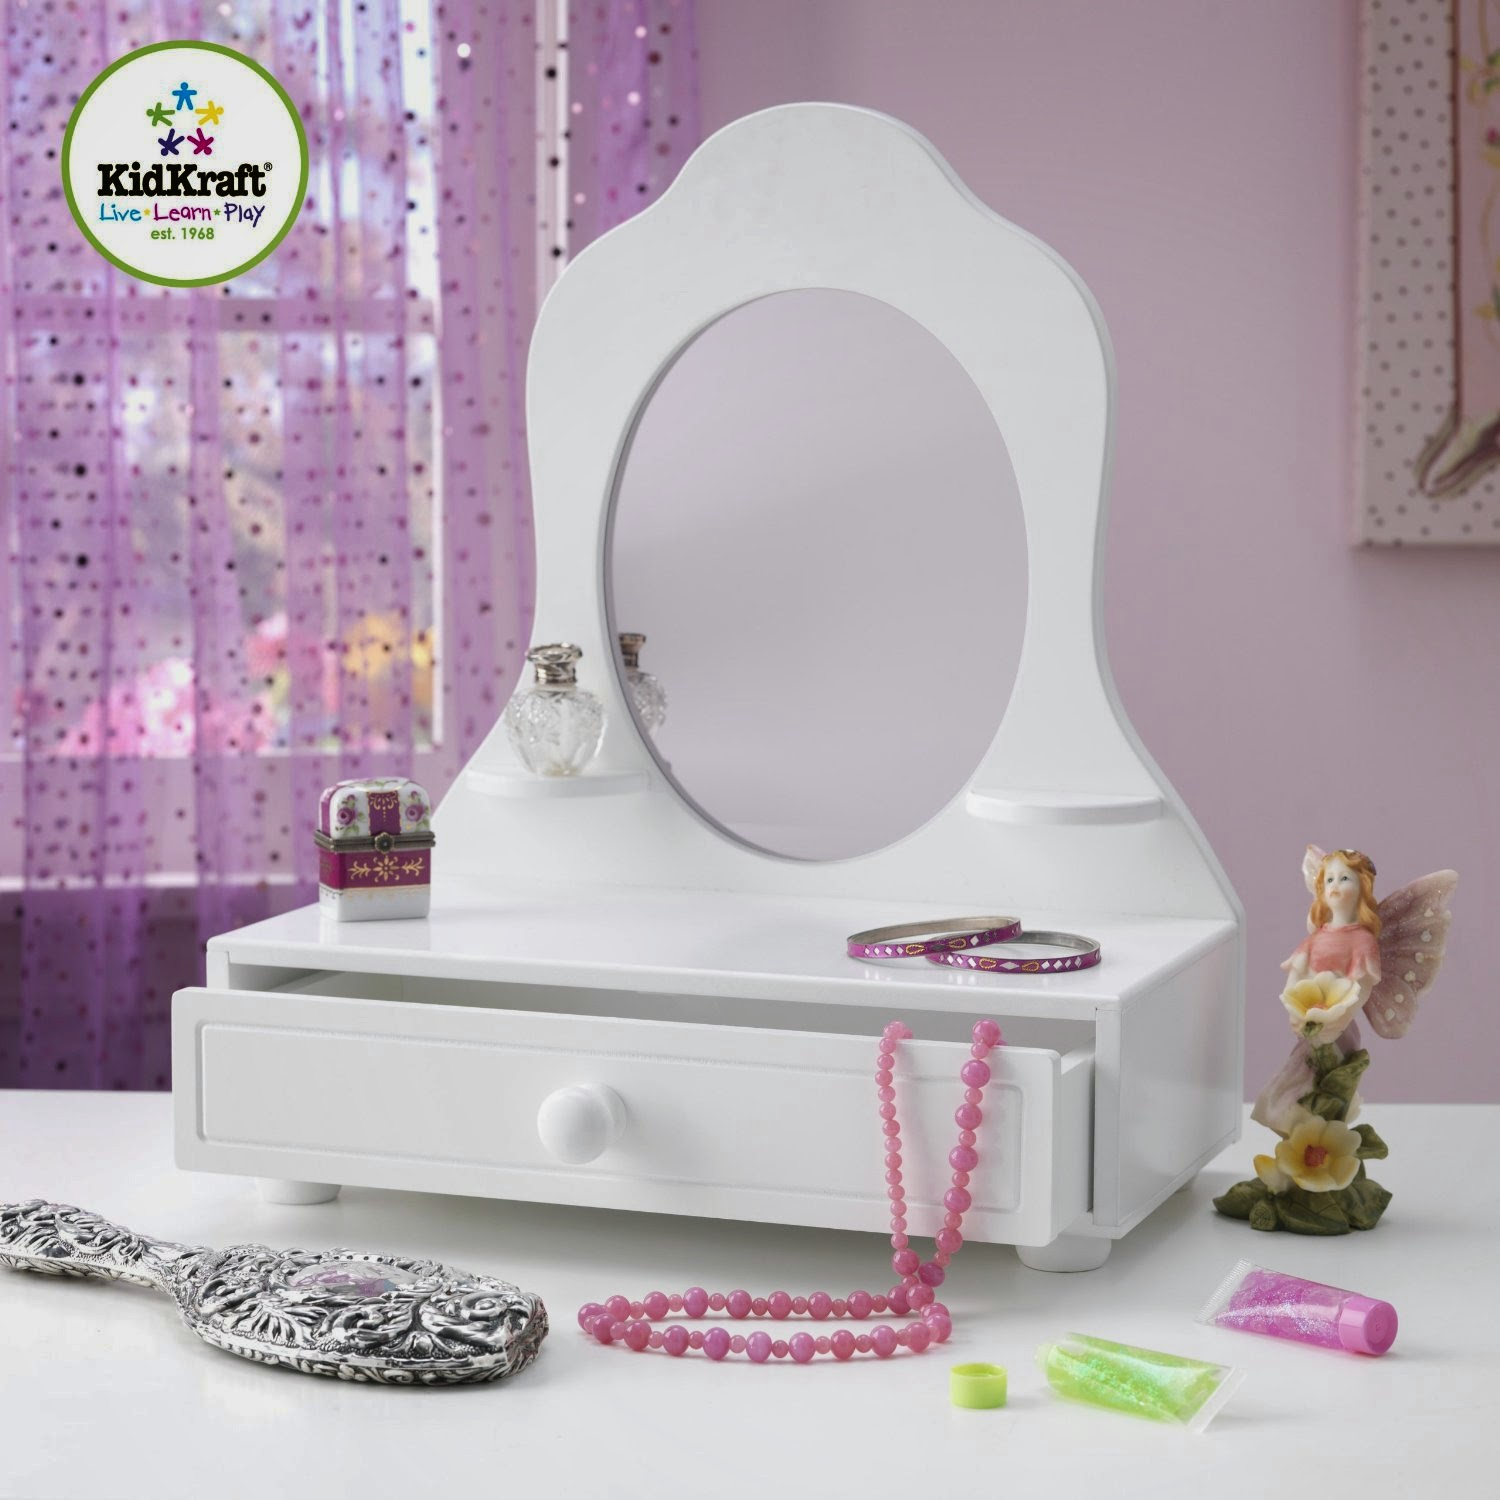 Bedroom decor ideas and designs vanity sets for girls